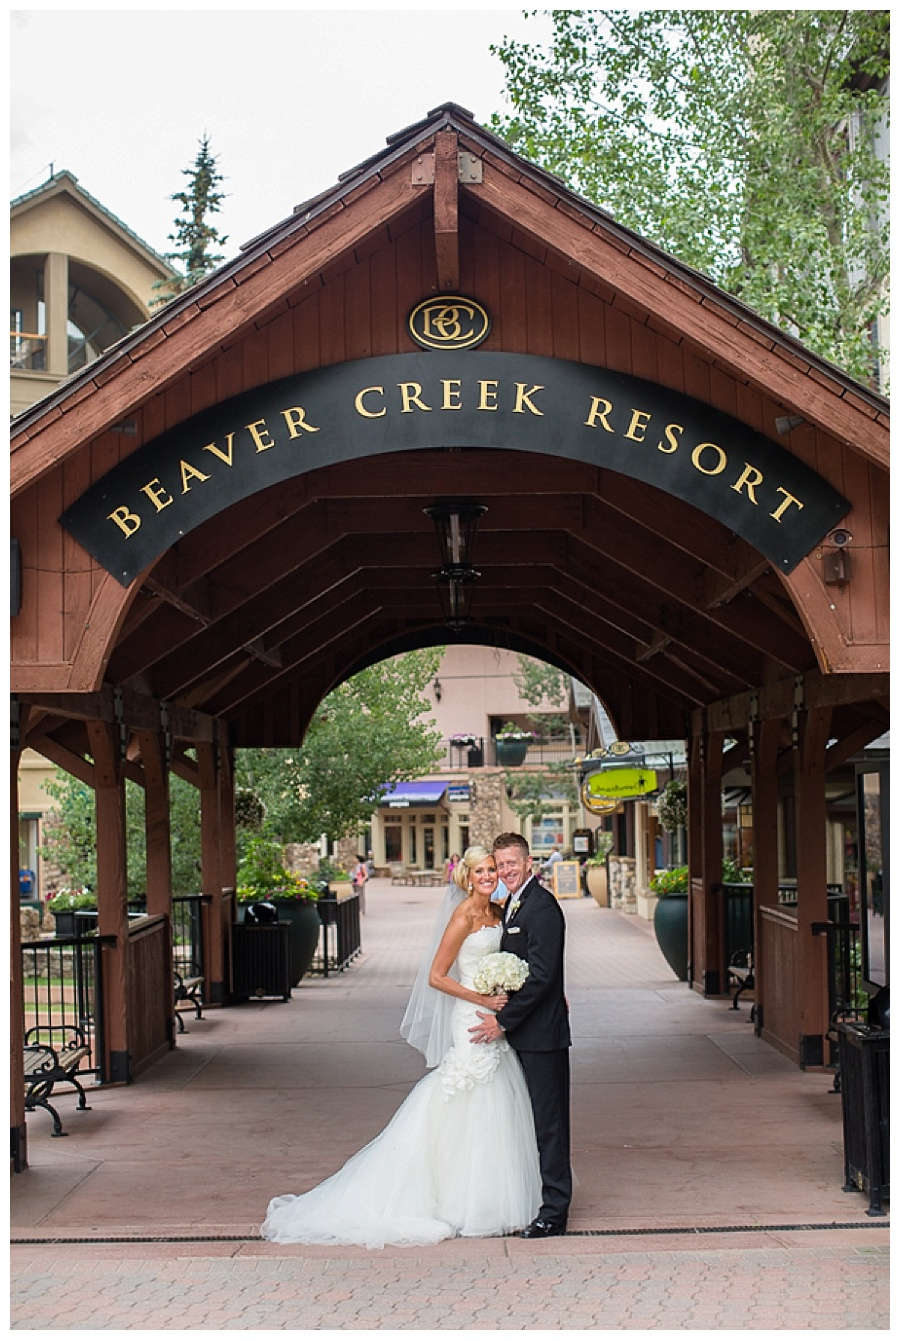 01 Bride and Groom on covered bridge in Beaver Creek wedding